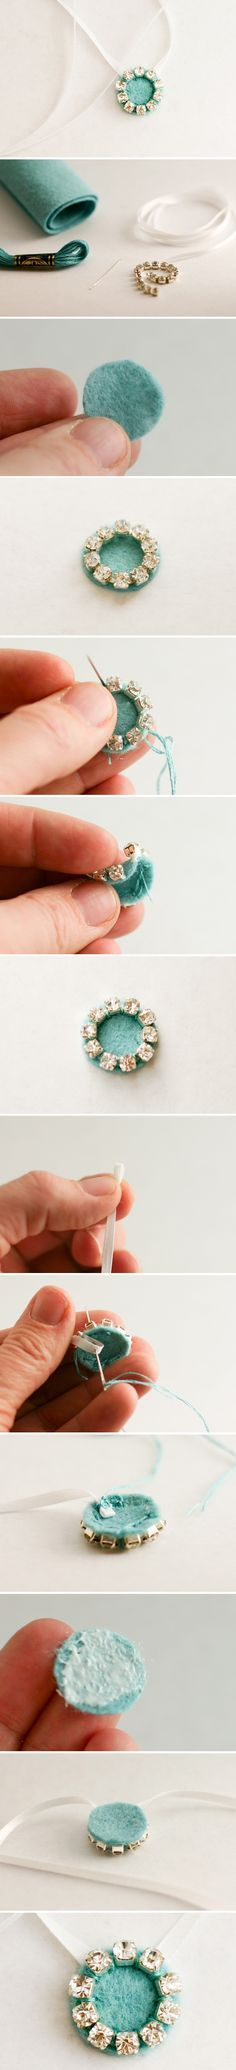 """rhinstone and felt DIY jewelry-would also be a cute """"button"""" to embellish the little paper easter baskets and other things"""